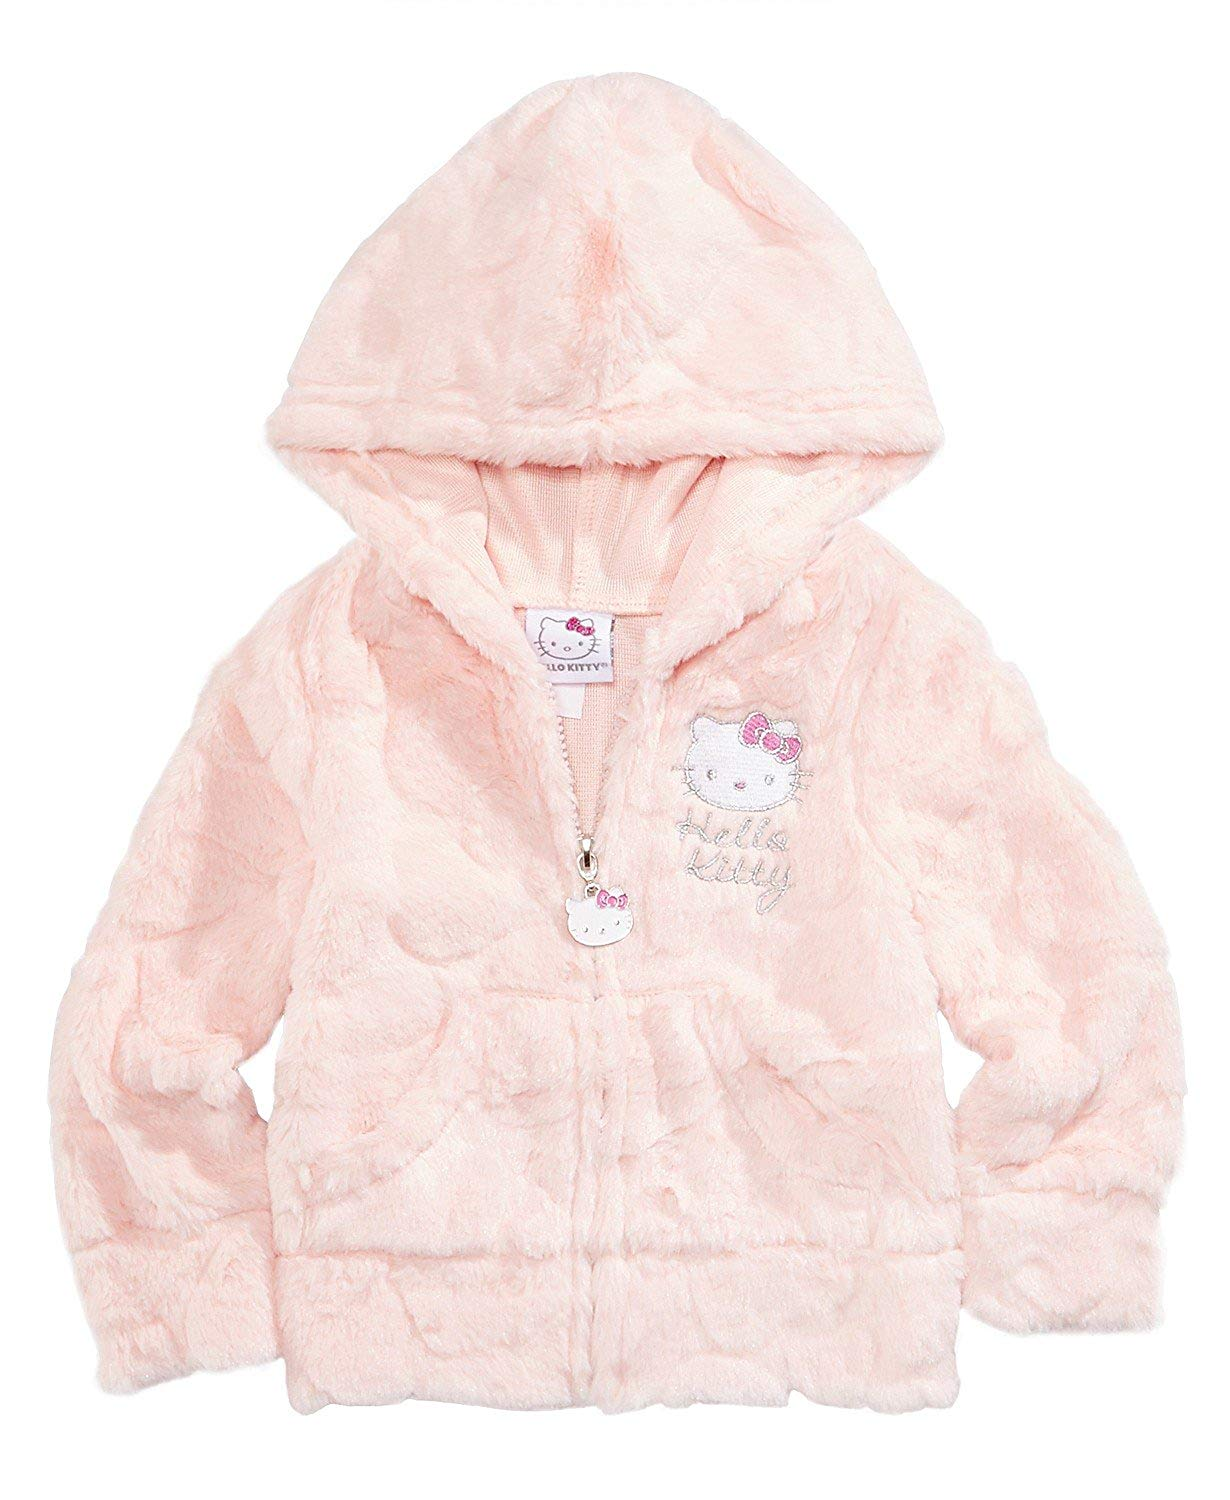 17014a244 Get Quotations · Hello Kitty Baby Girl Faux-Fur Zip-up Hoodie Jacket -Size  24 Month